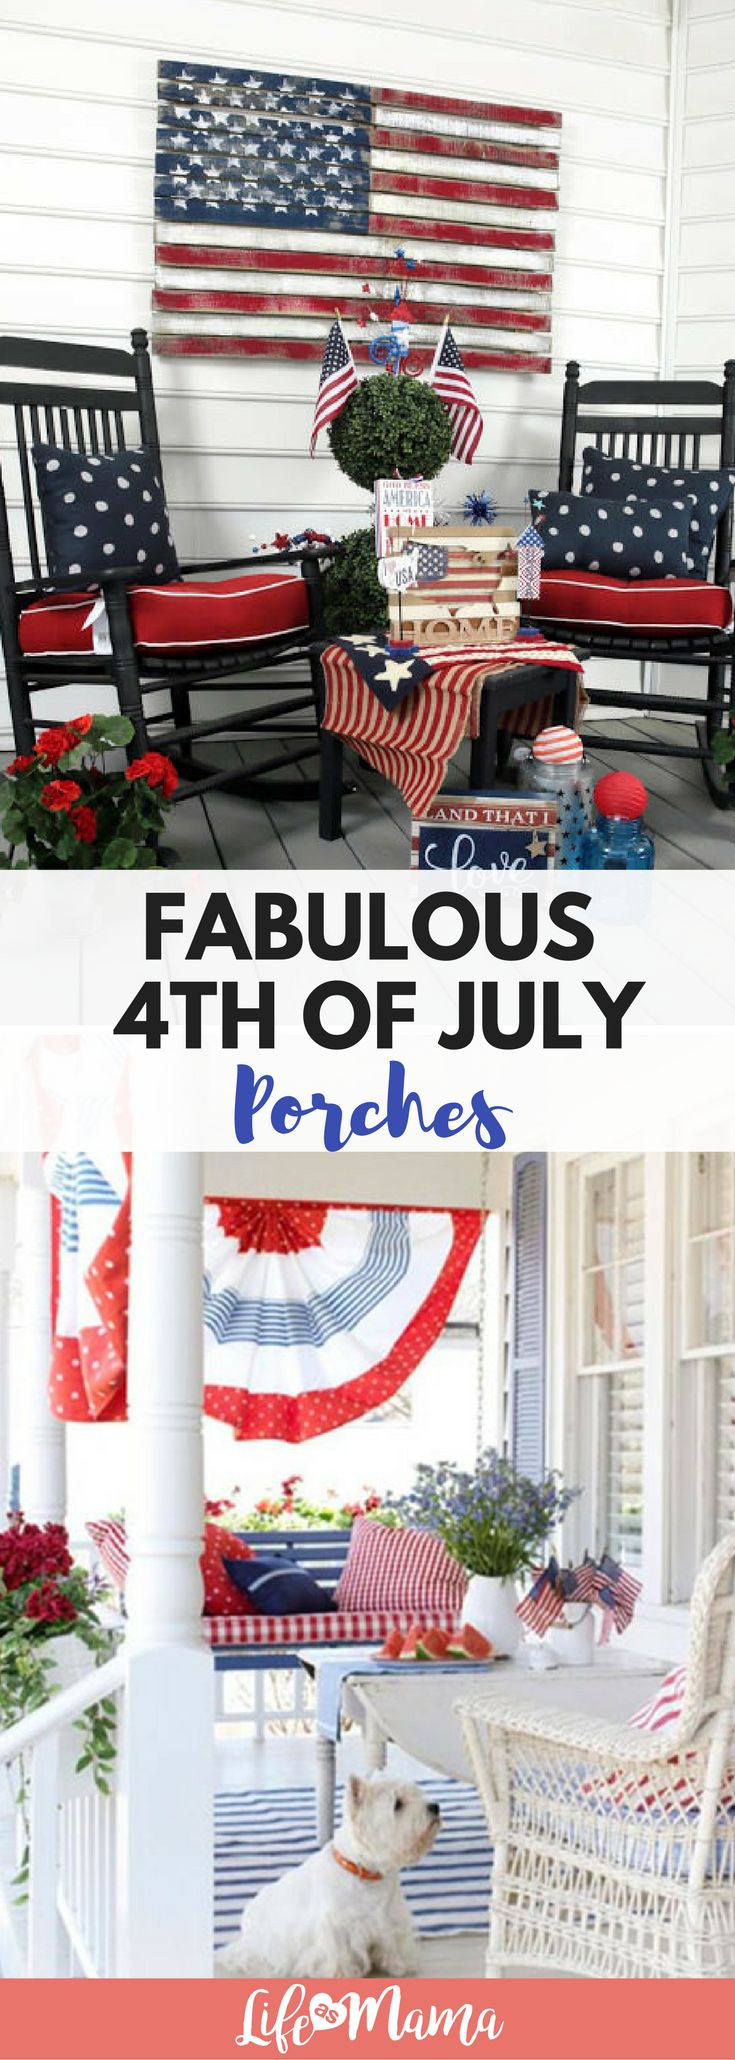 Looking to decorate your porch for the 4th of July? Look no further! These porch decorations are perfect.